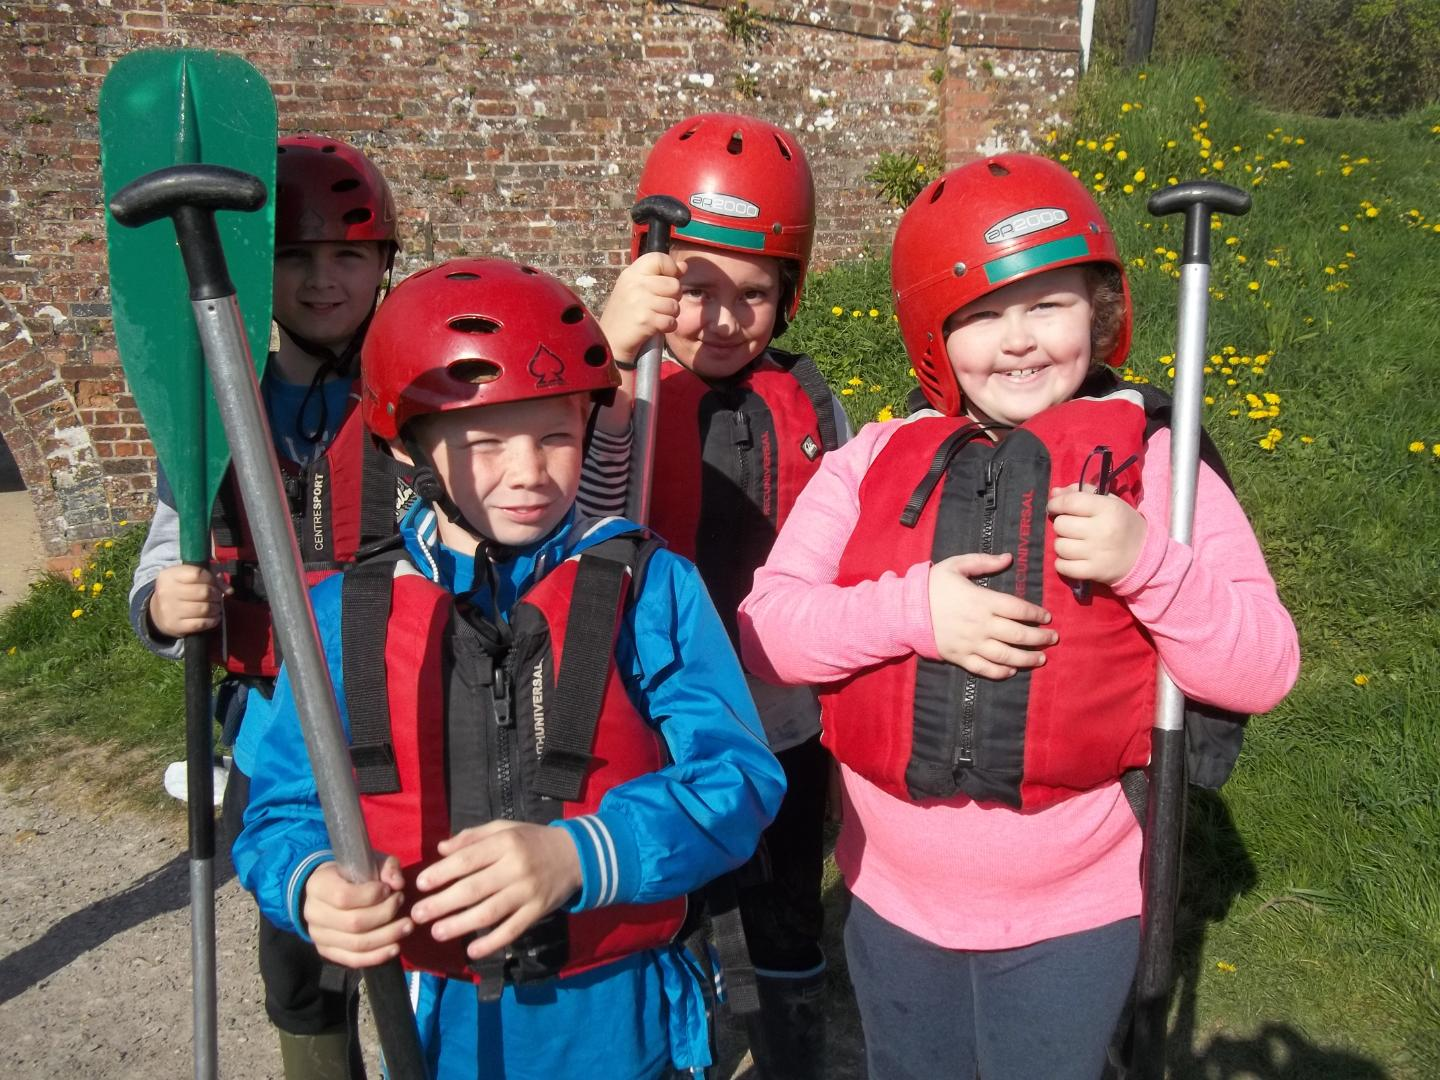 Canoeing fun at River Mead School